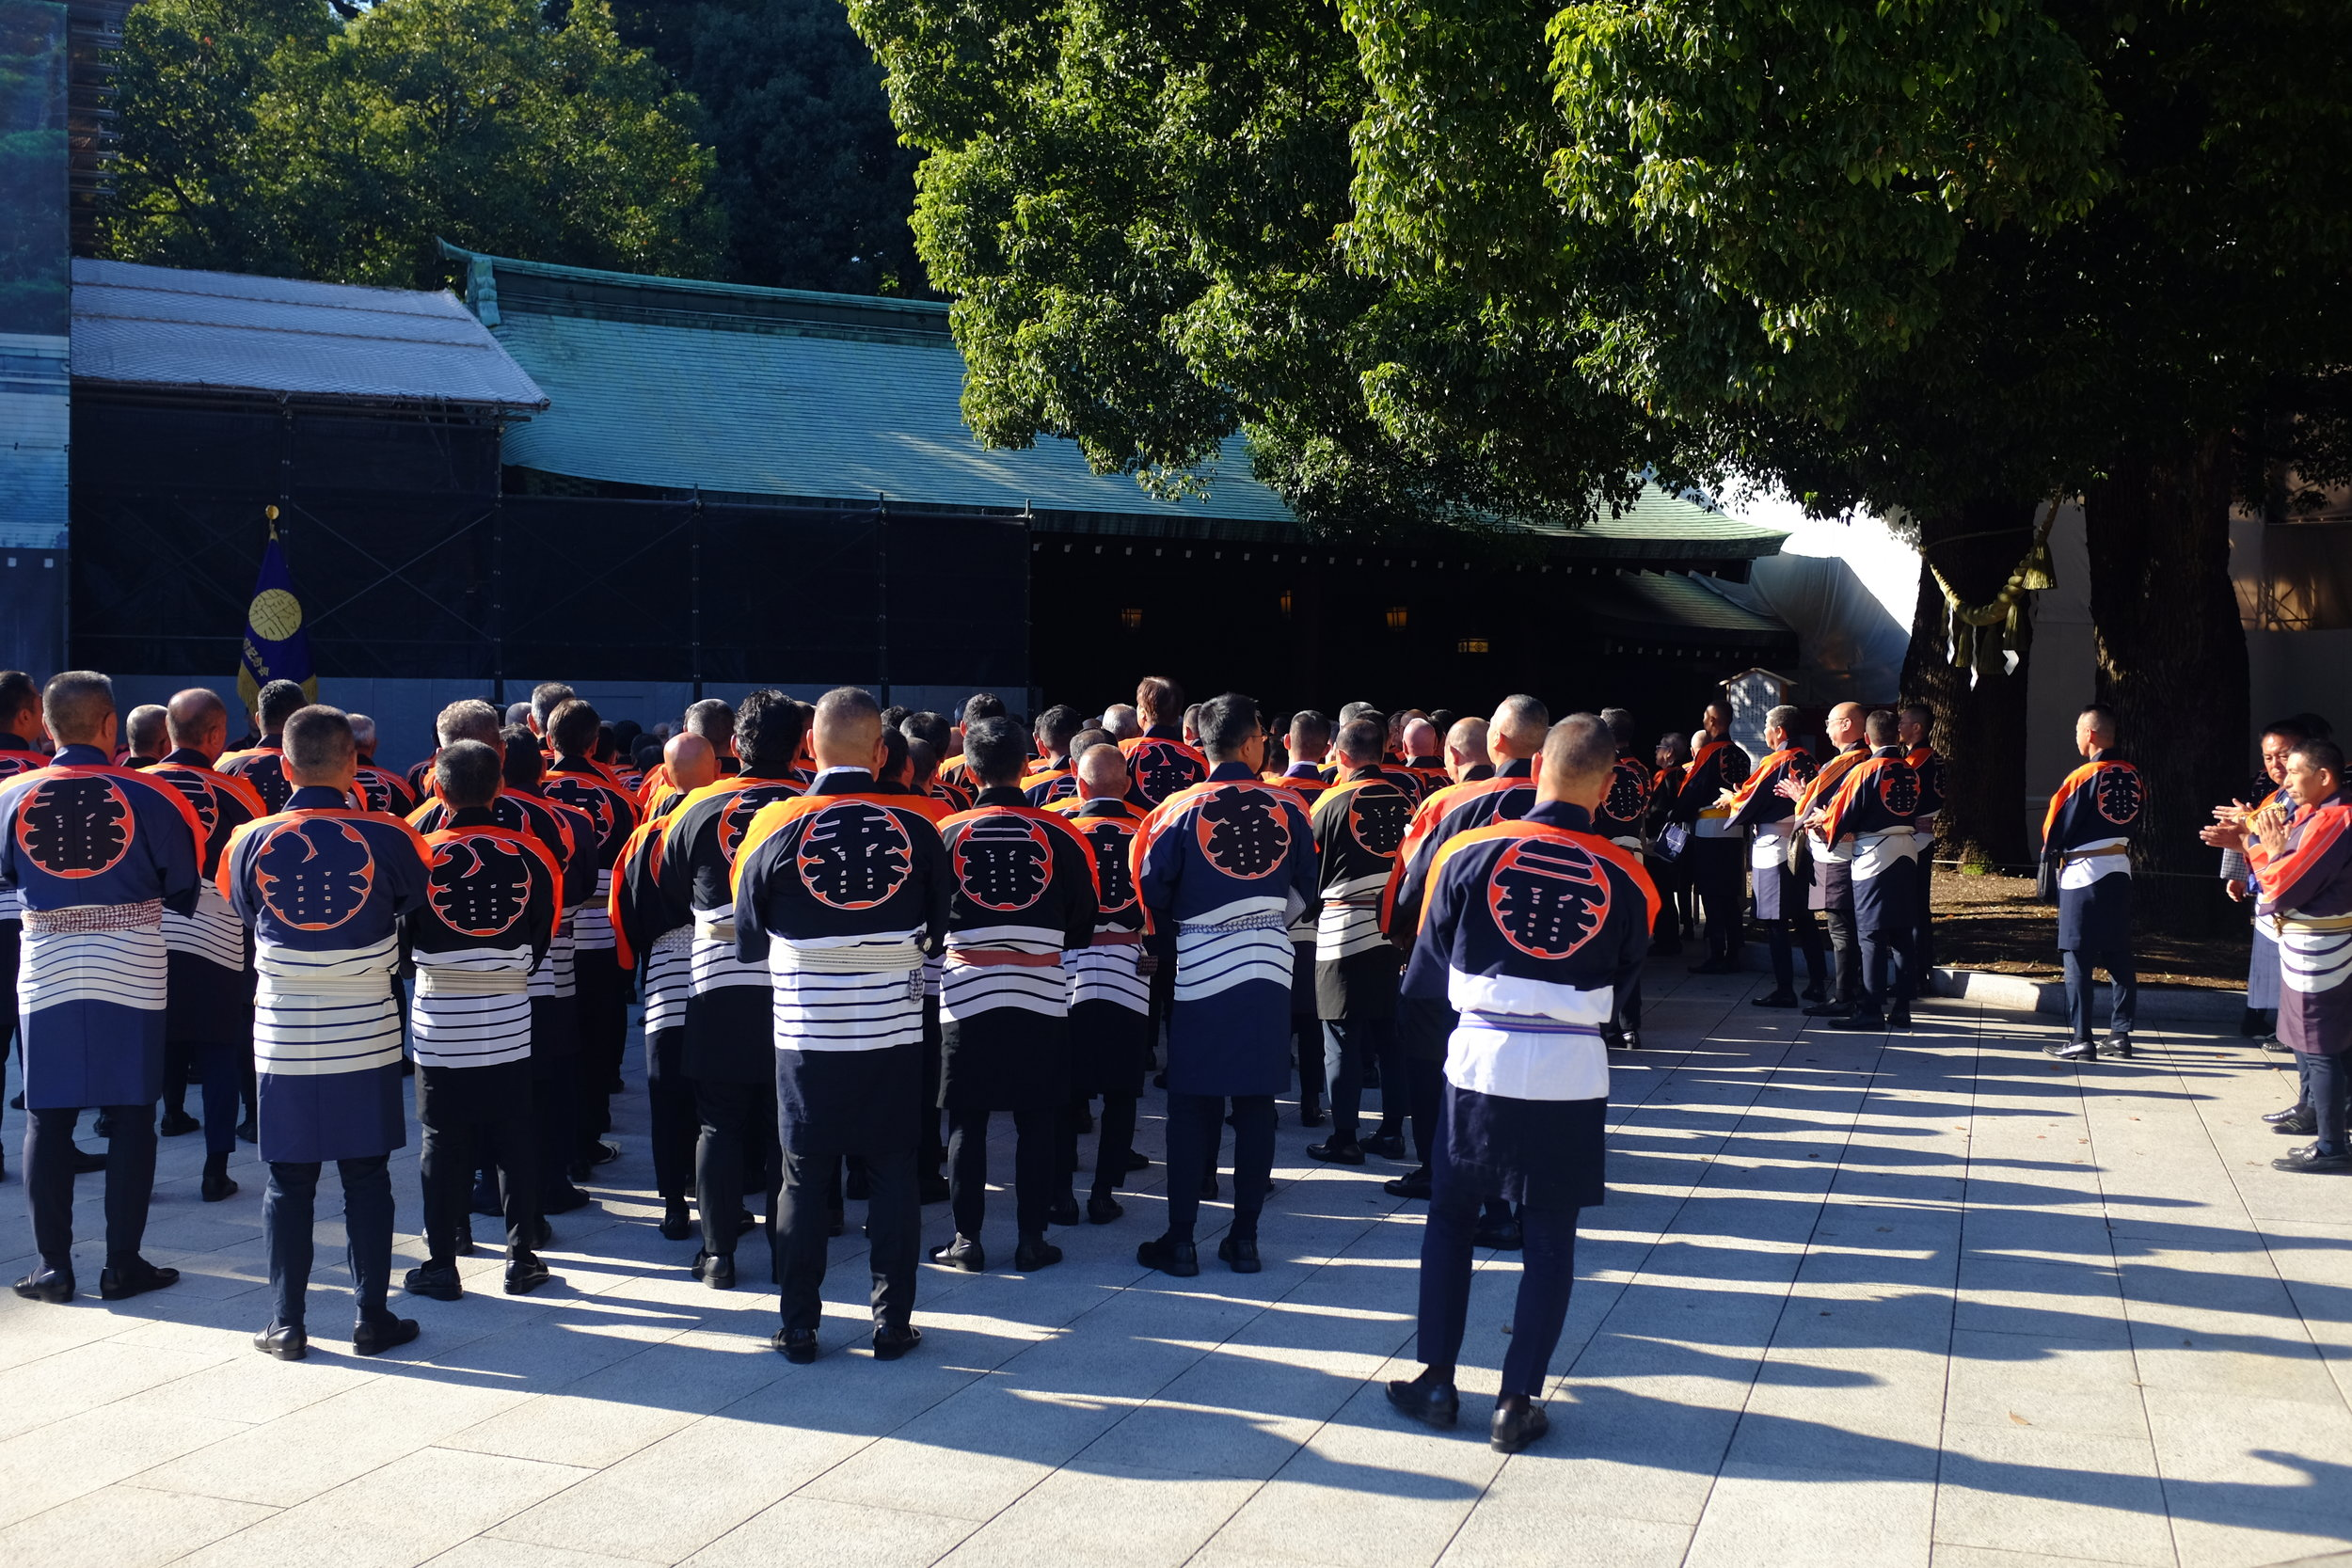 culture_day_meiji_jingu_japan_faye_mcnulty_02